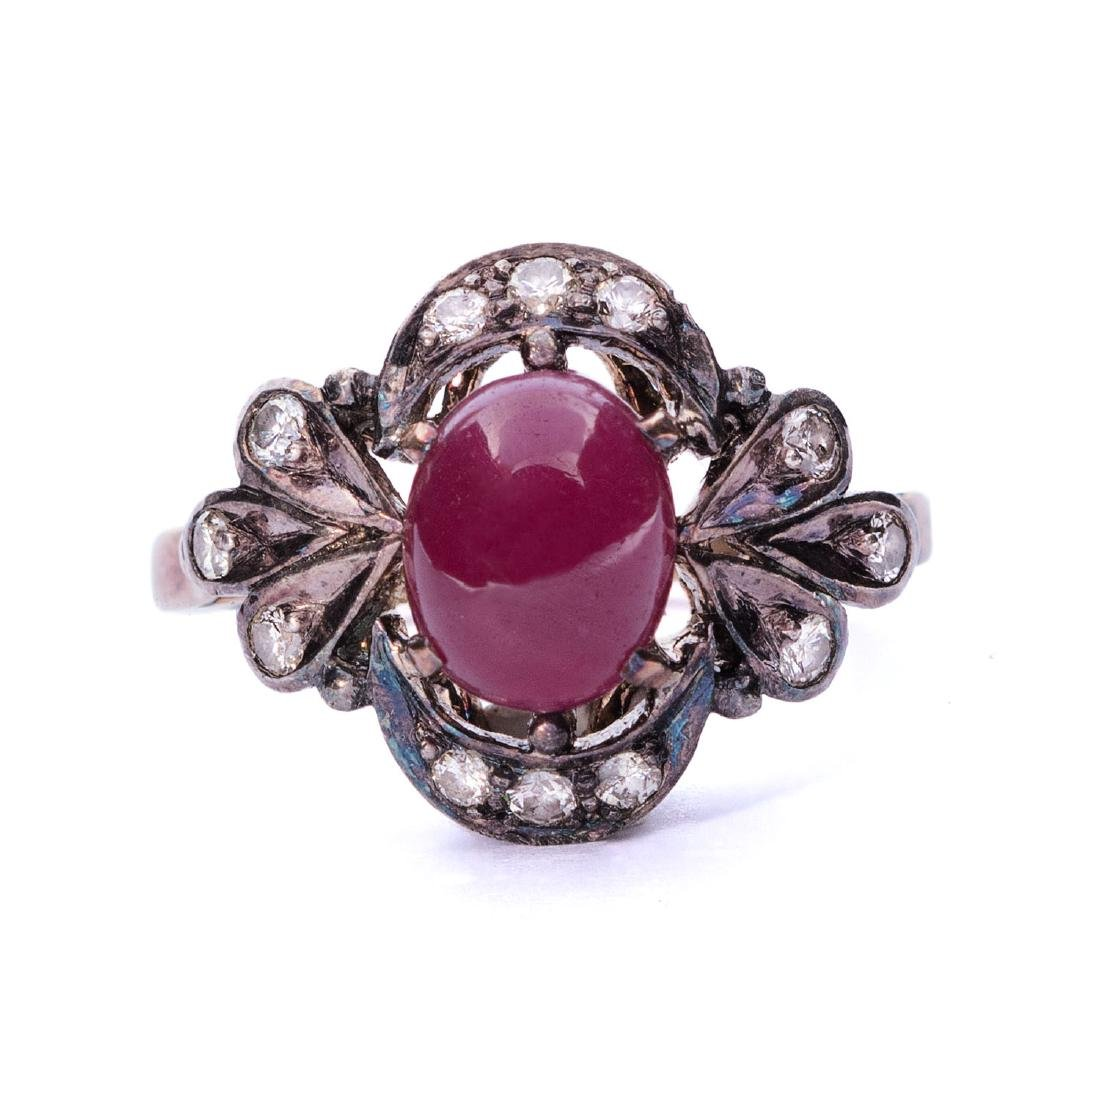 A vintage star ruby and diamond ring